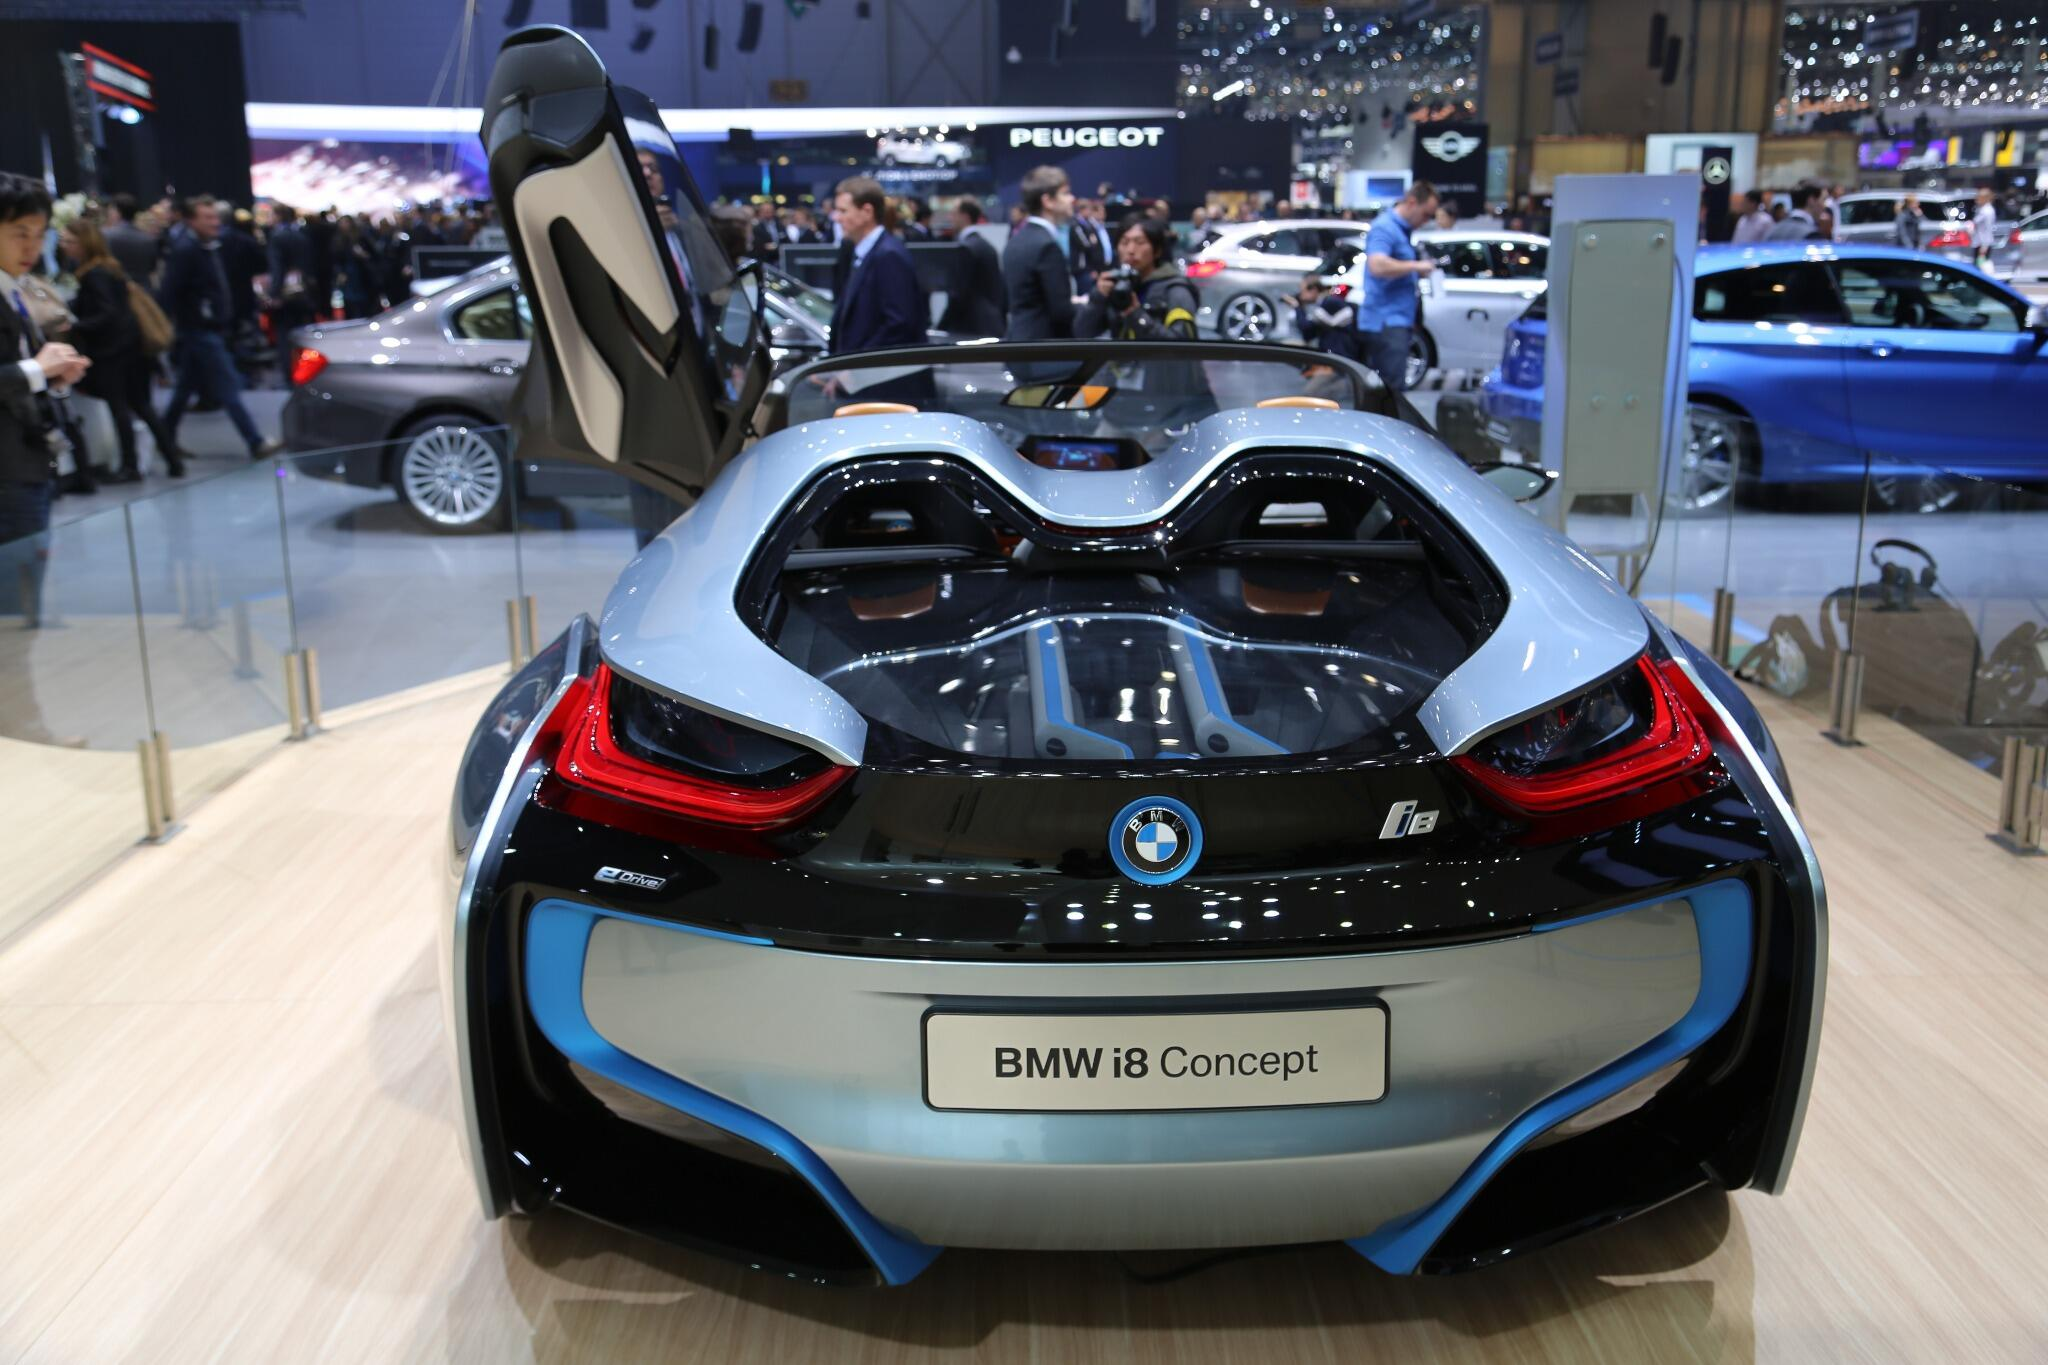 Standing above it all: The #BMWi8 Concept at #genevamotorshow #SIAG. http://t.co/sXrWyF5cOp